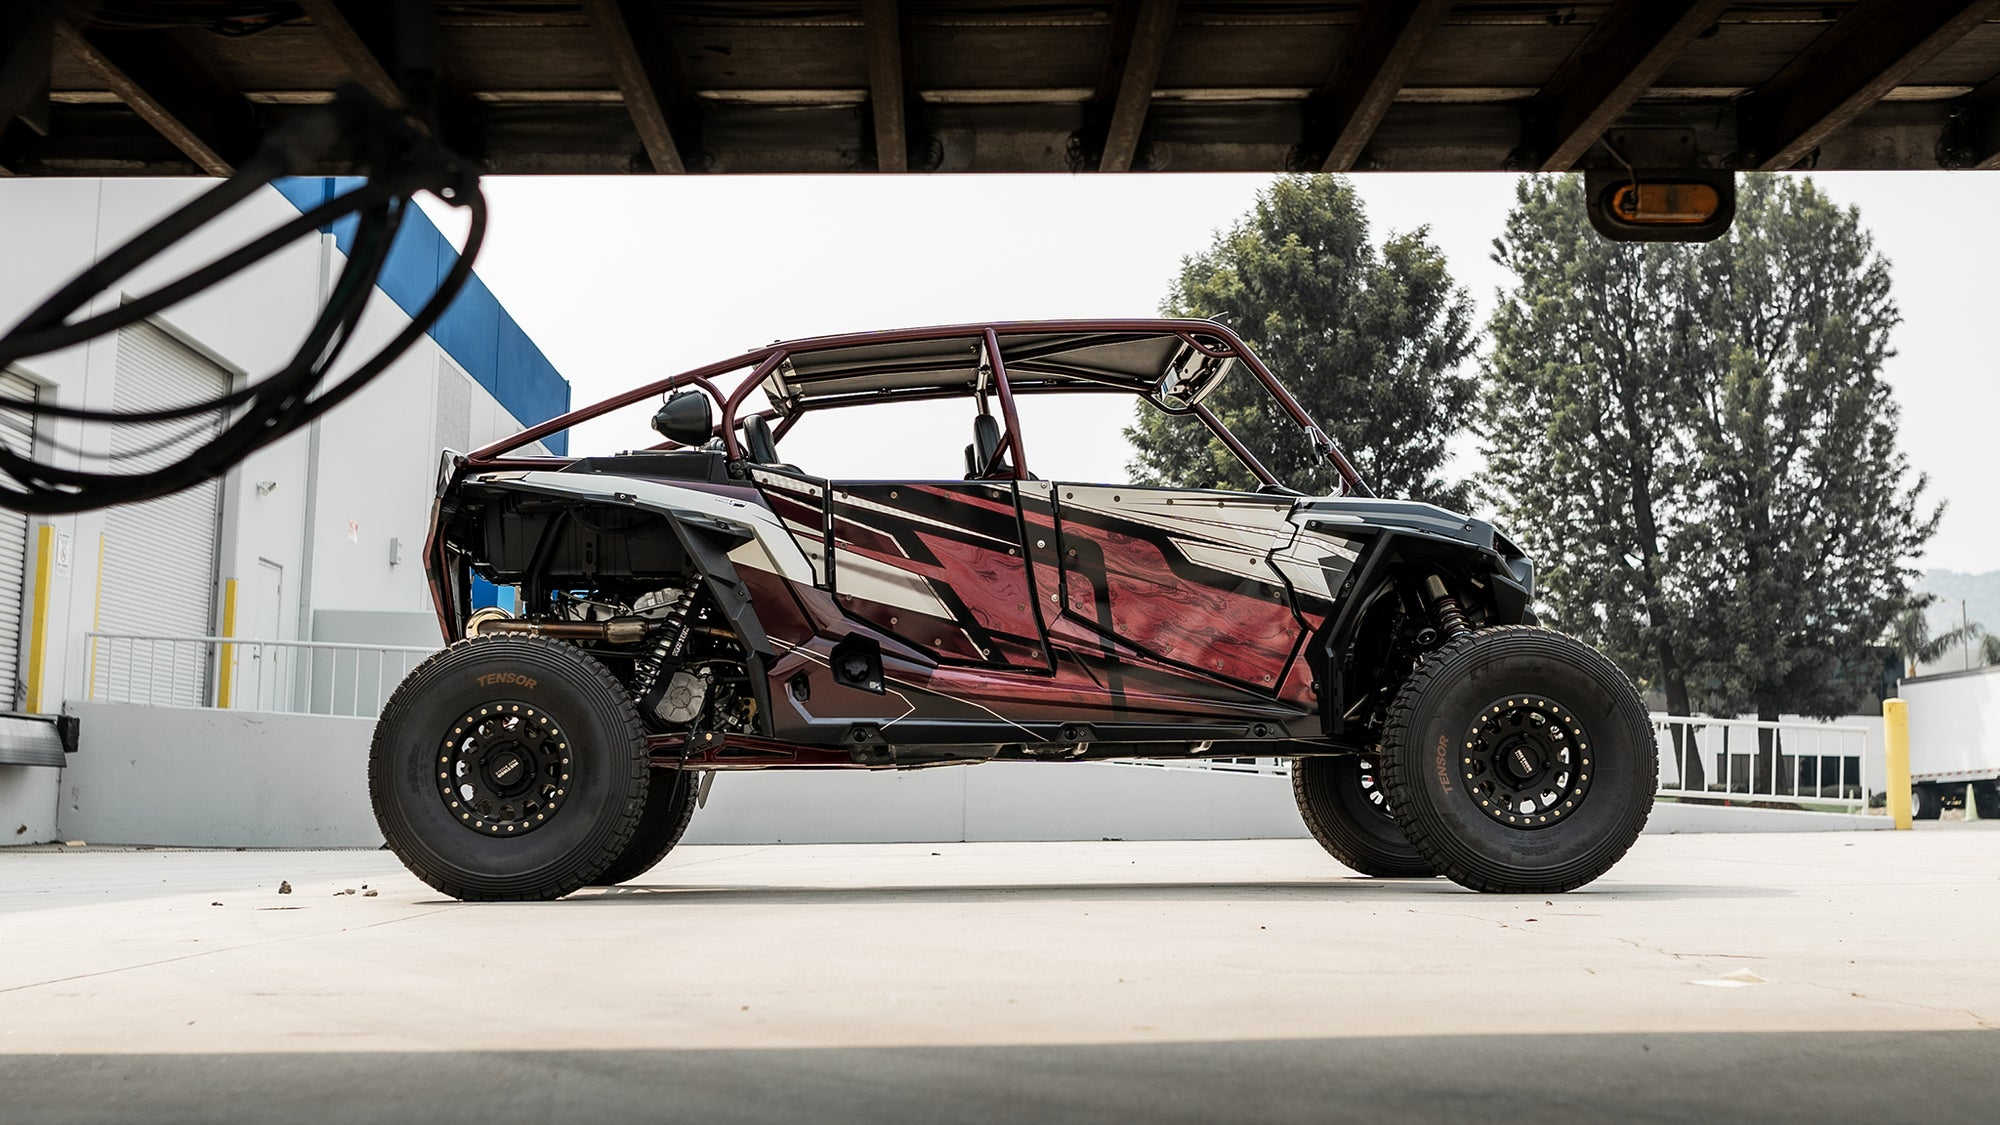 Polaris RZR Paint or Wrap?